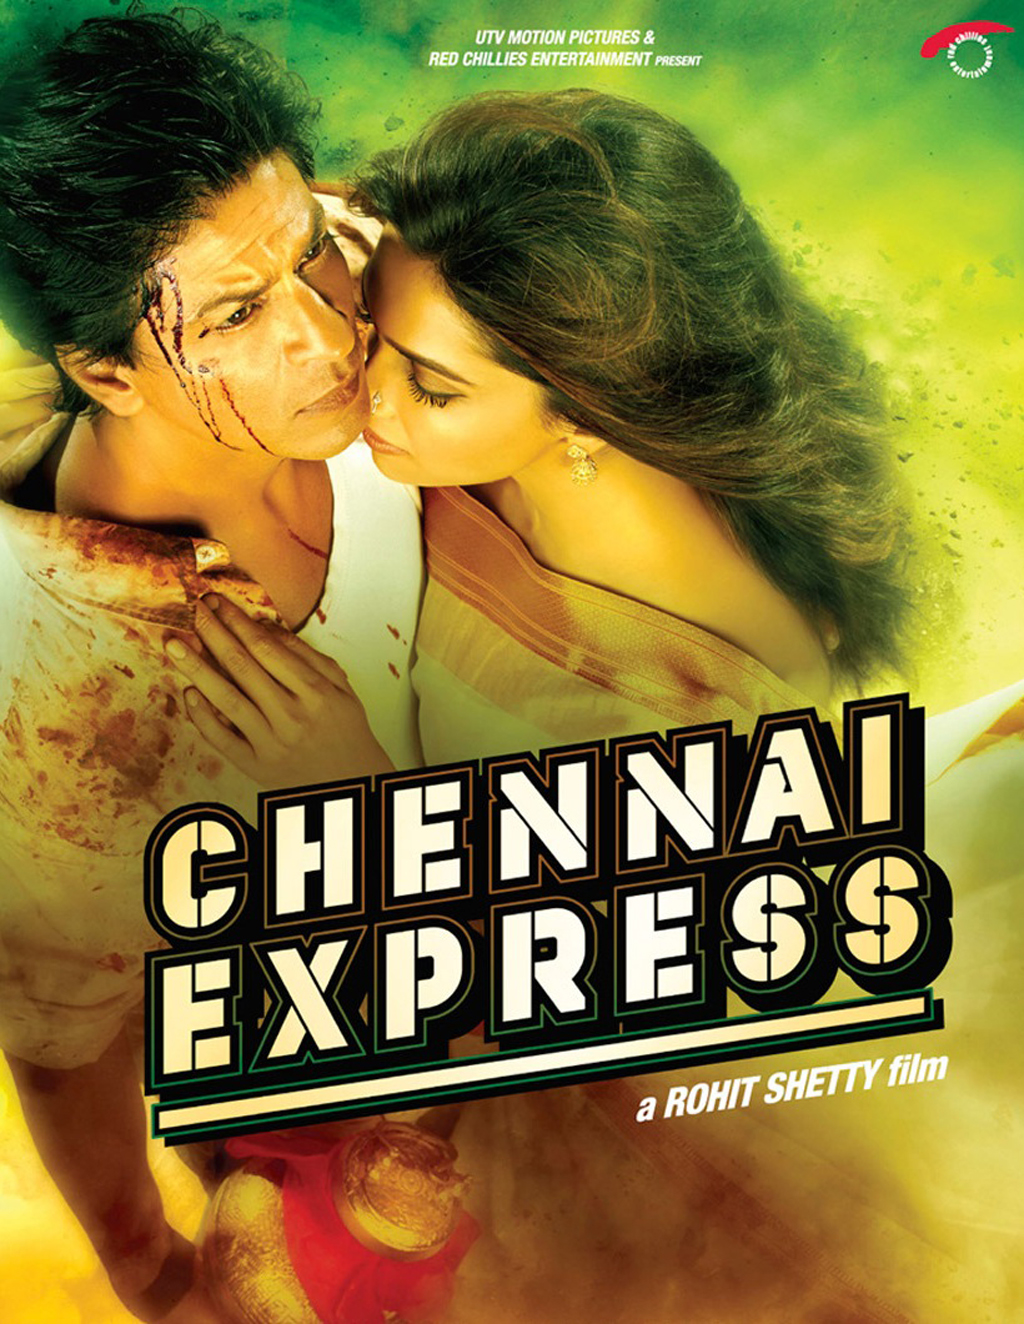 Chennai express movie box office collection - Hindi movie 2013 box office collection ...